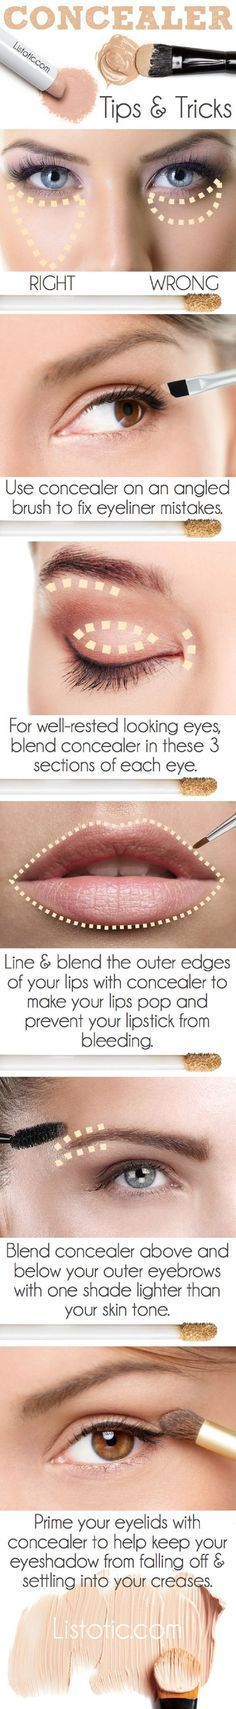 Use Your Concealer The Right Way - 13 Best Makeup Tutorials and Infographics for???